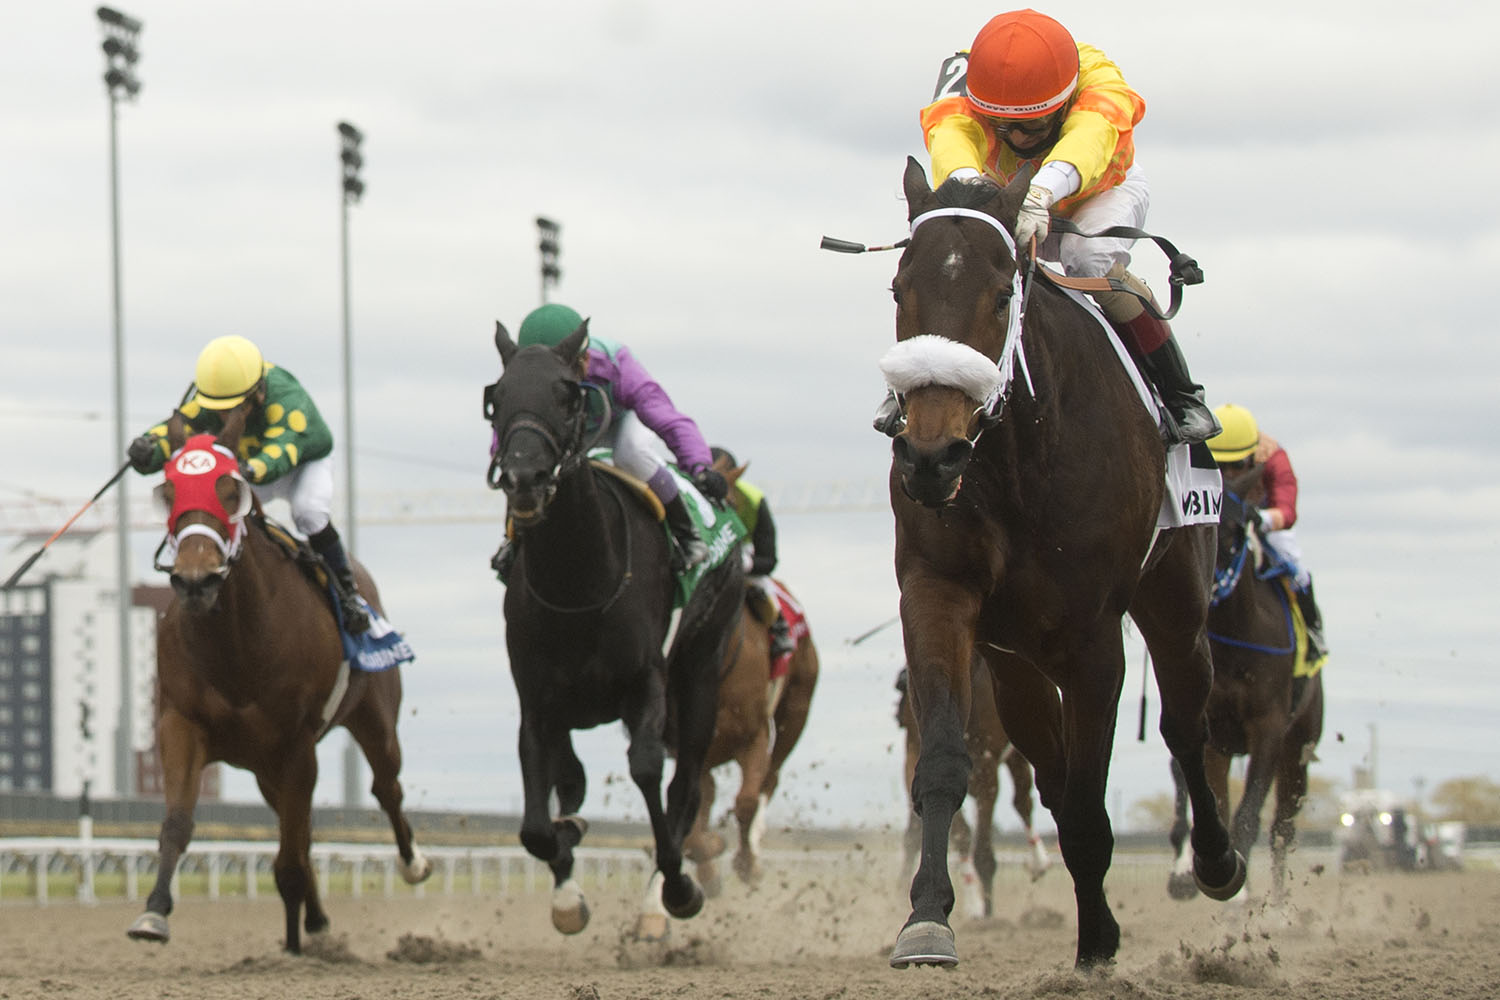 Merveilleux and jockey Rafael Hernandez winning the $150,000 Ontario Damsel Stakes on Saturday, Nov. 21 at Woodbine Racetrack. (Michael Burns Photo)